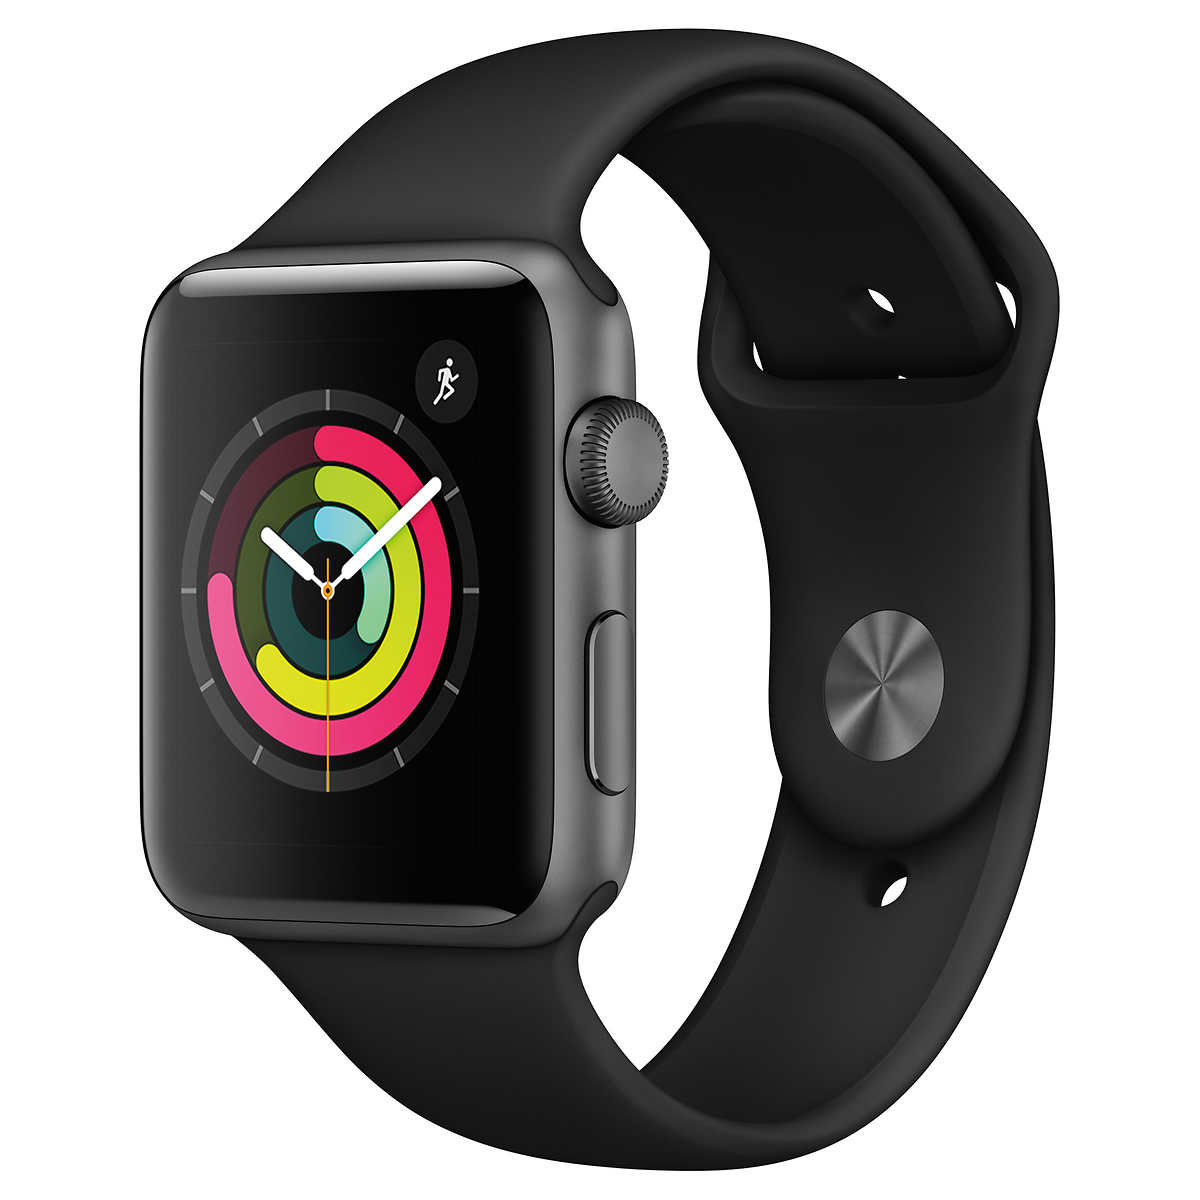 Apple Watch Series 3 Gps 42 Mm Space Grey Aluminum Case With Black Sport Band